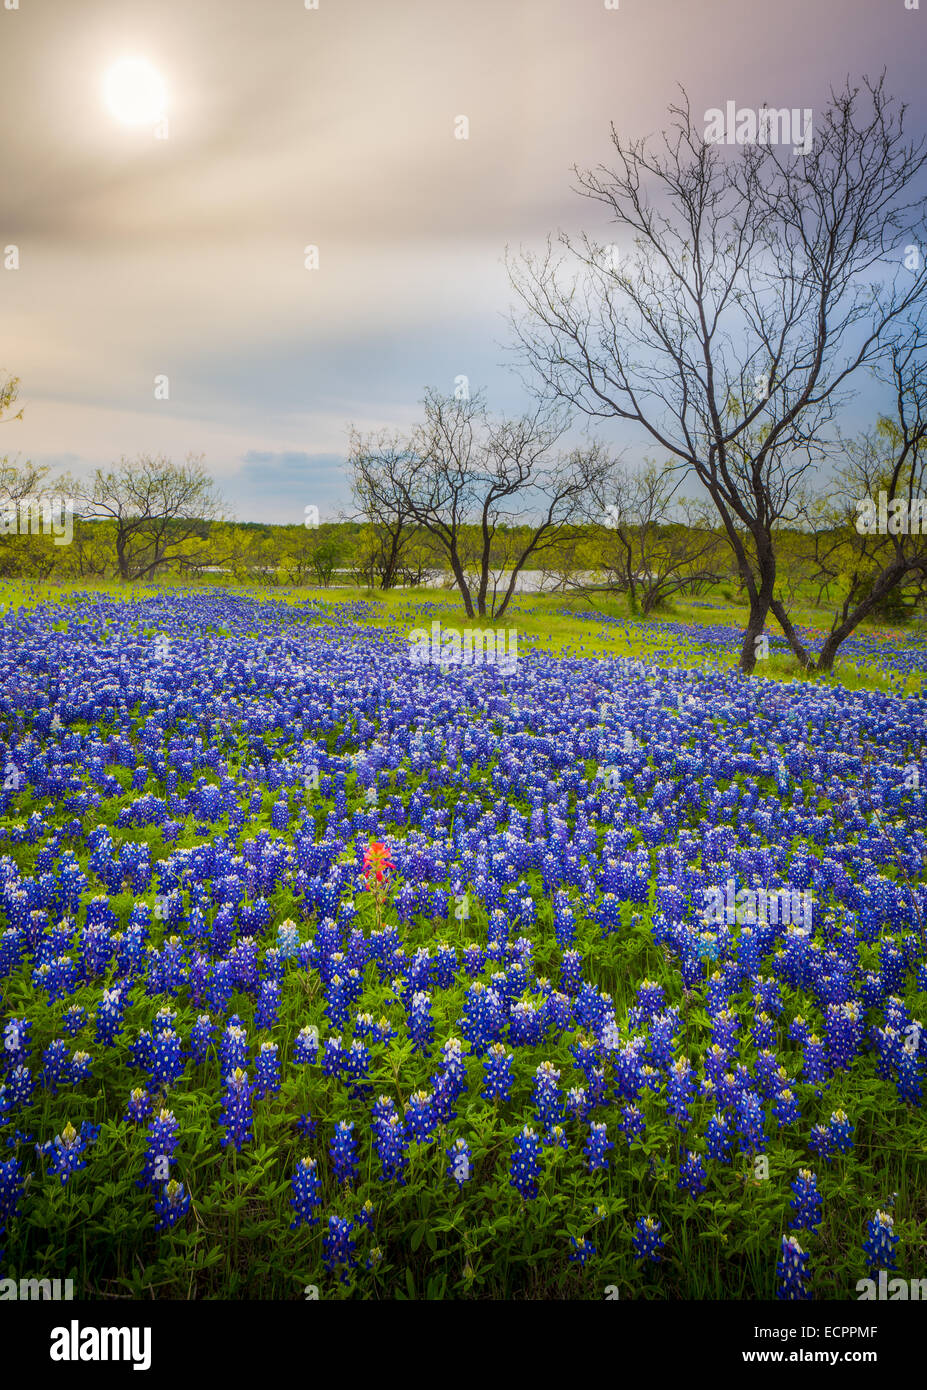 Bluebonnets in Ennis, Texas. Lupinus texensis, the Texas bluebonnet, is a species of lupine endemic to Texas - Stock Image